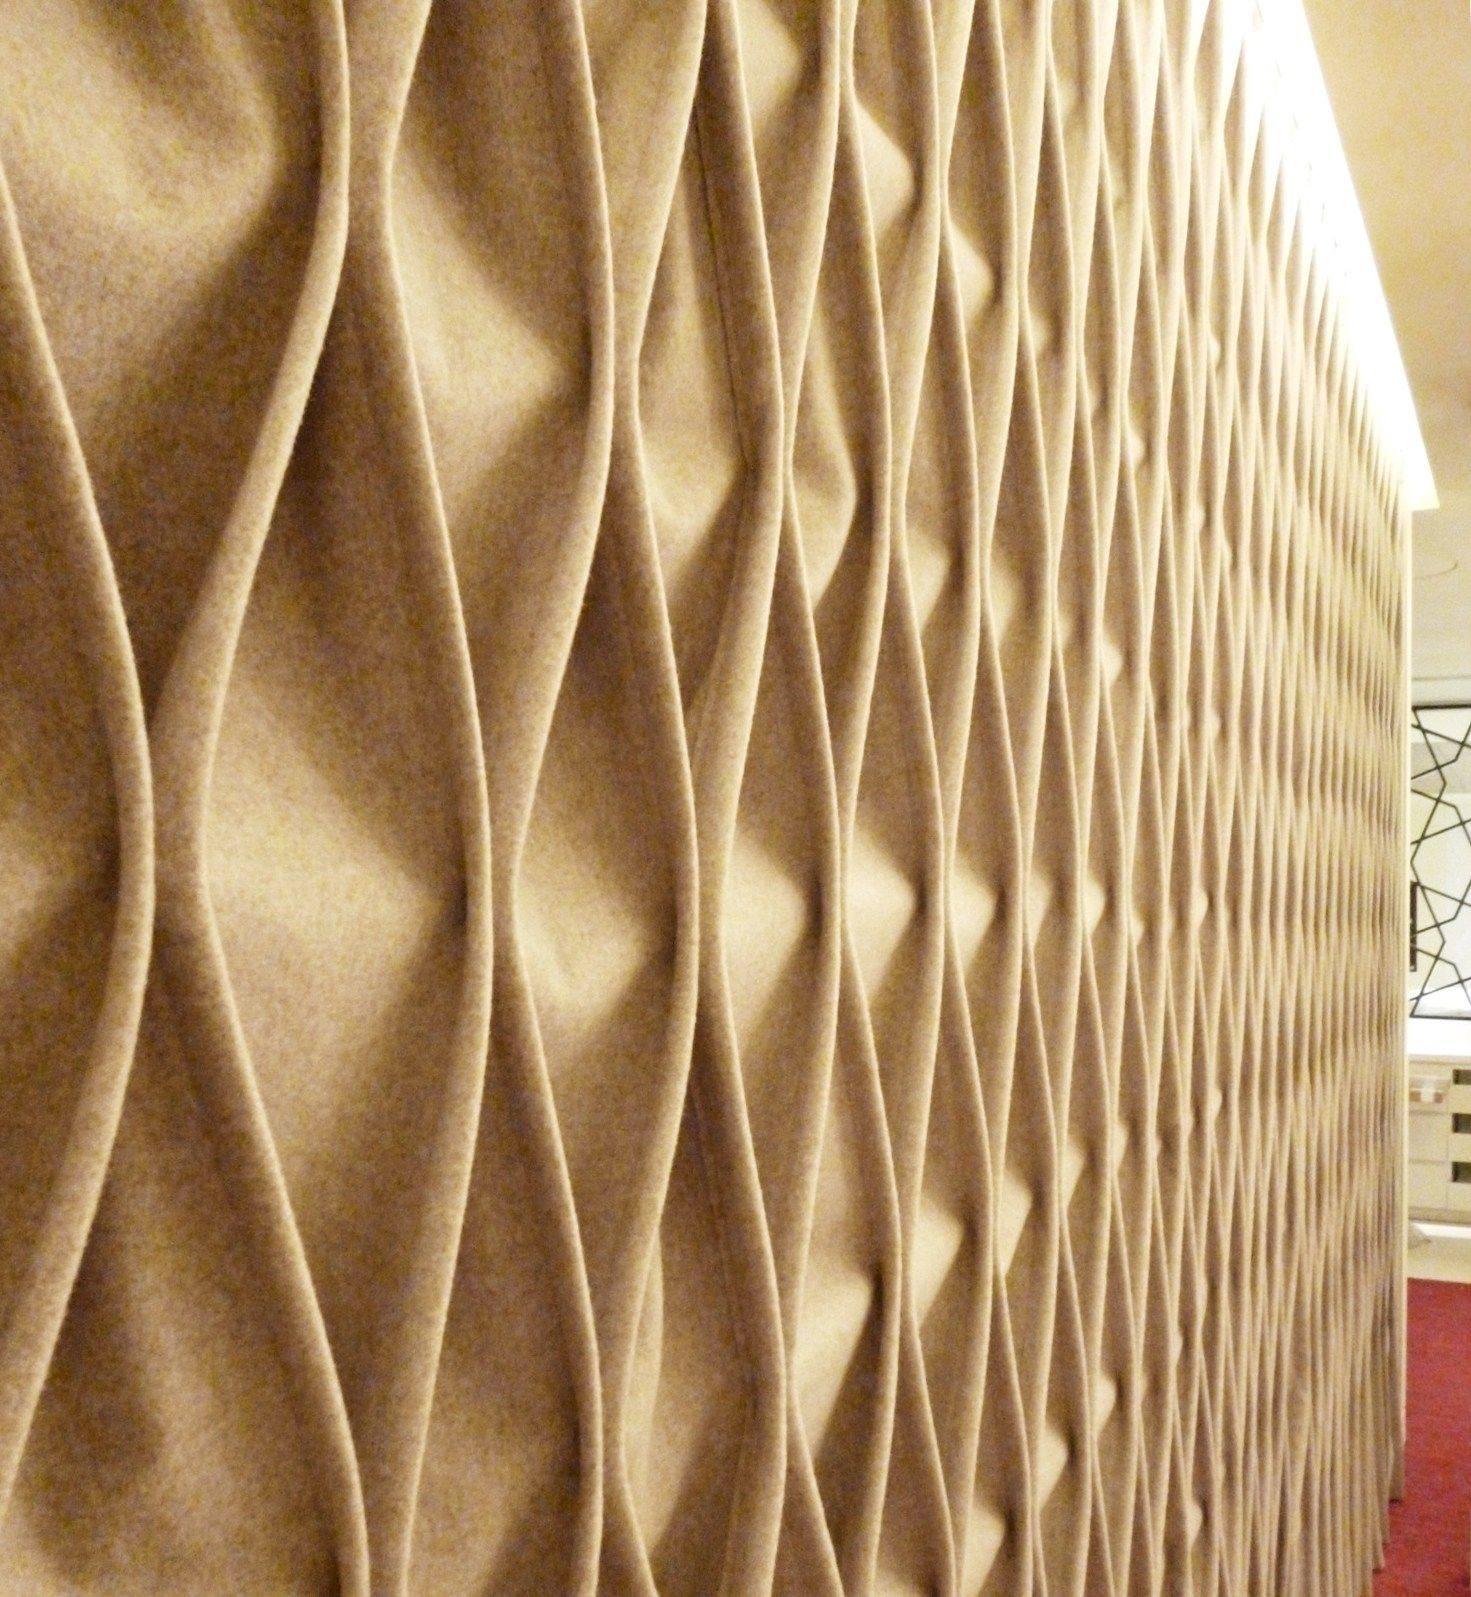 CABLE | Fabric decorative acoustical panel By Anne Kyyrö Quinn ...